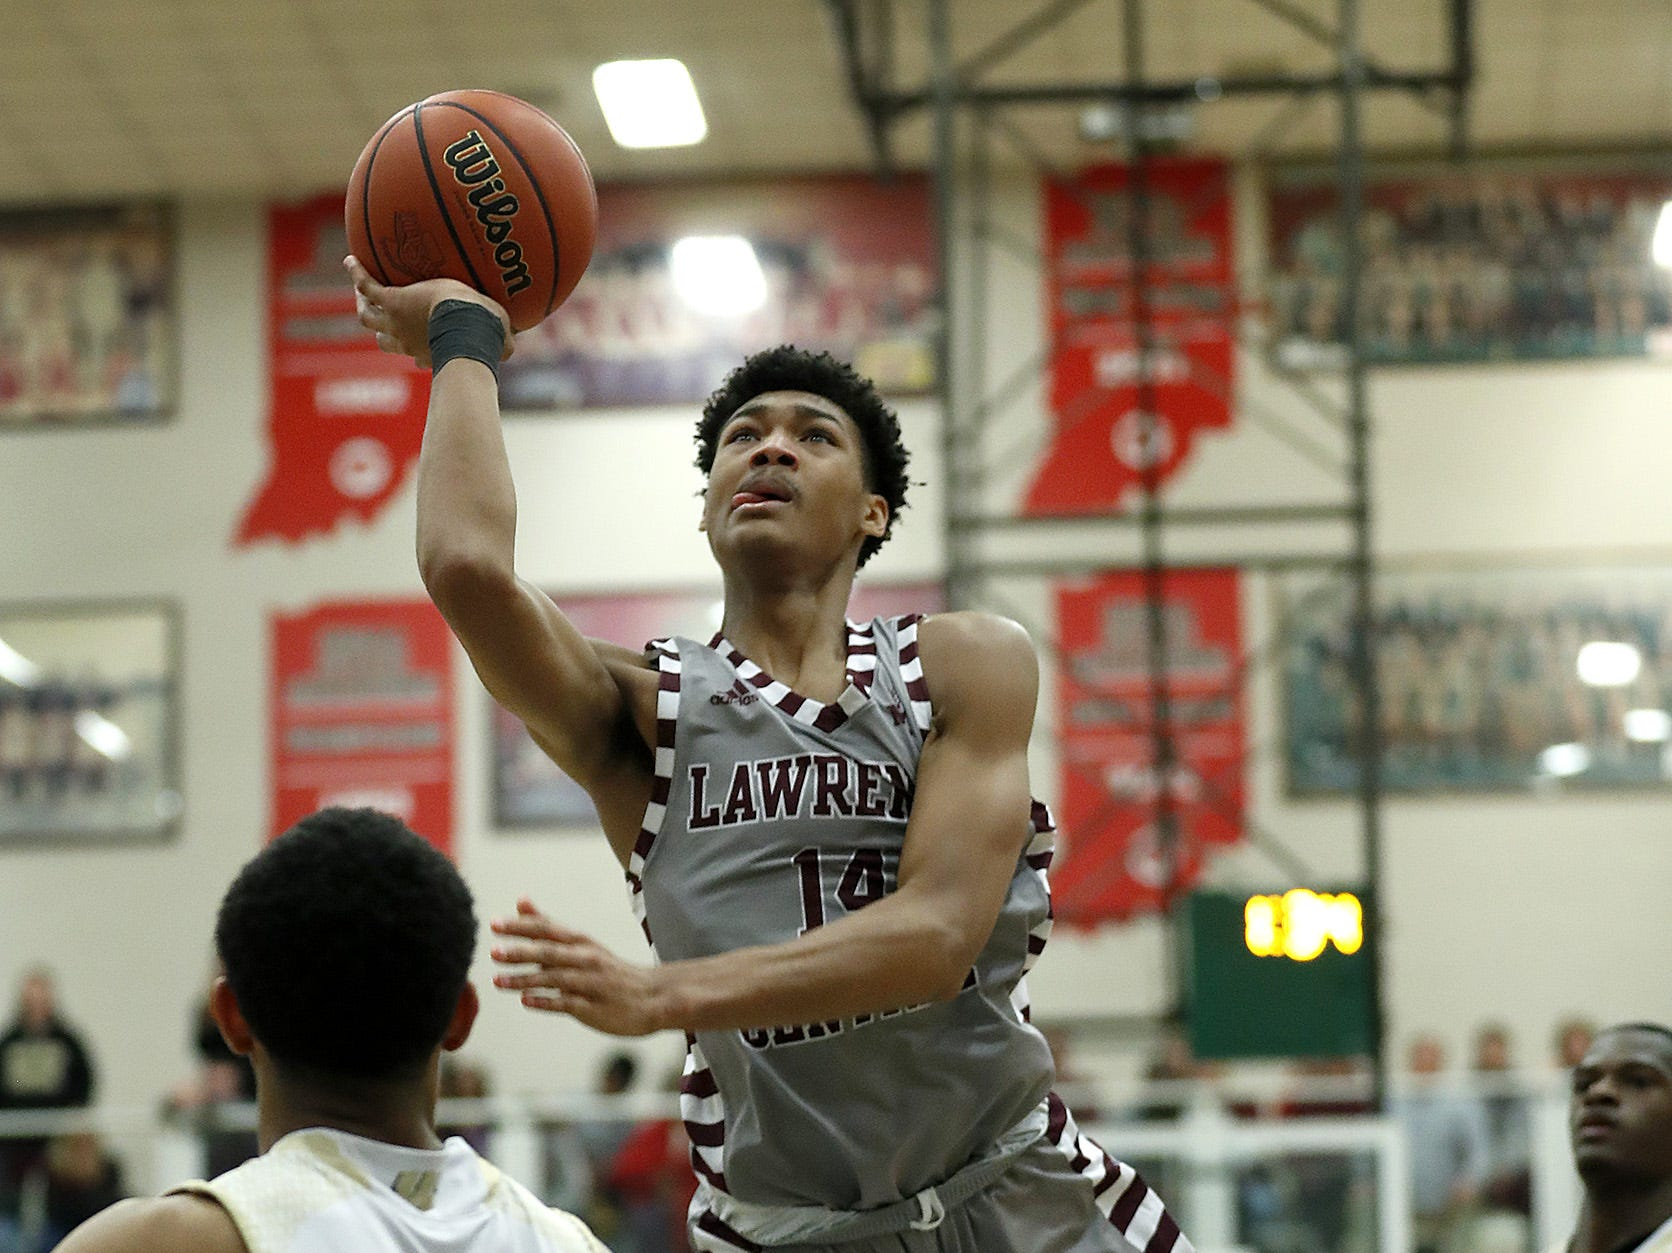 Lawrence Central Bears Dre Davis (14) is fouled by Warren Central Warriors David Bell (22) in the second half of their game at Lawrence North High School on Saturday, Mar 2, 2019. The Lawrence Central Bears defeated the Warren Central Warriors  67-52.